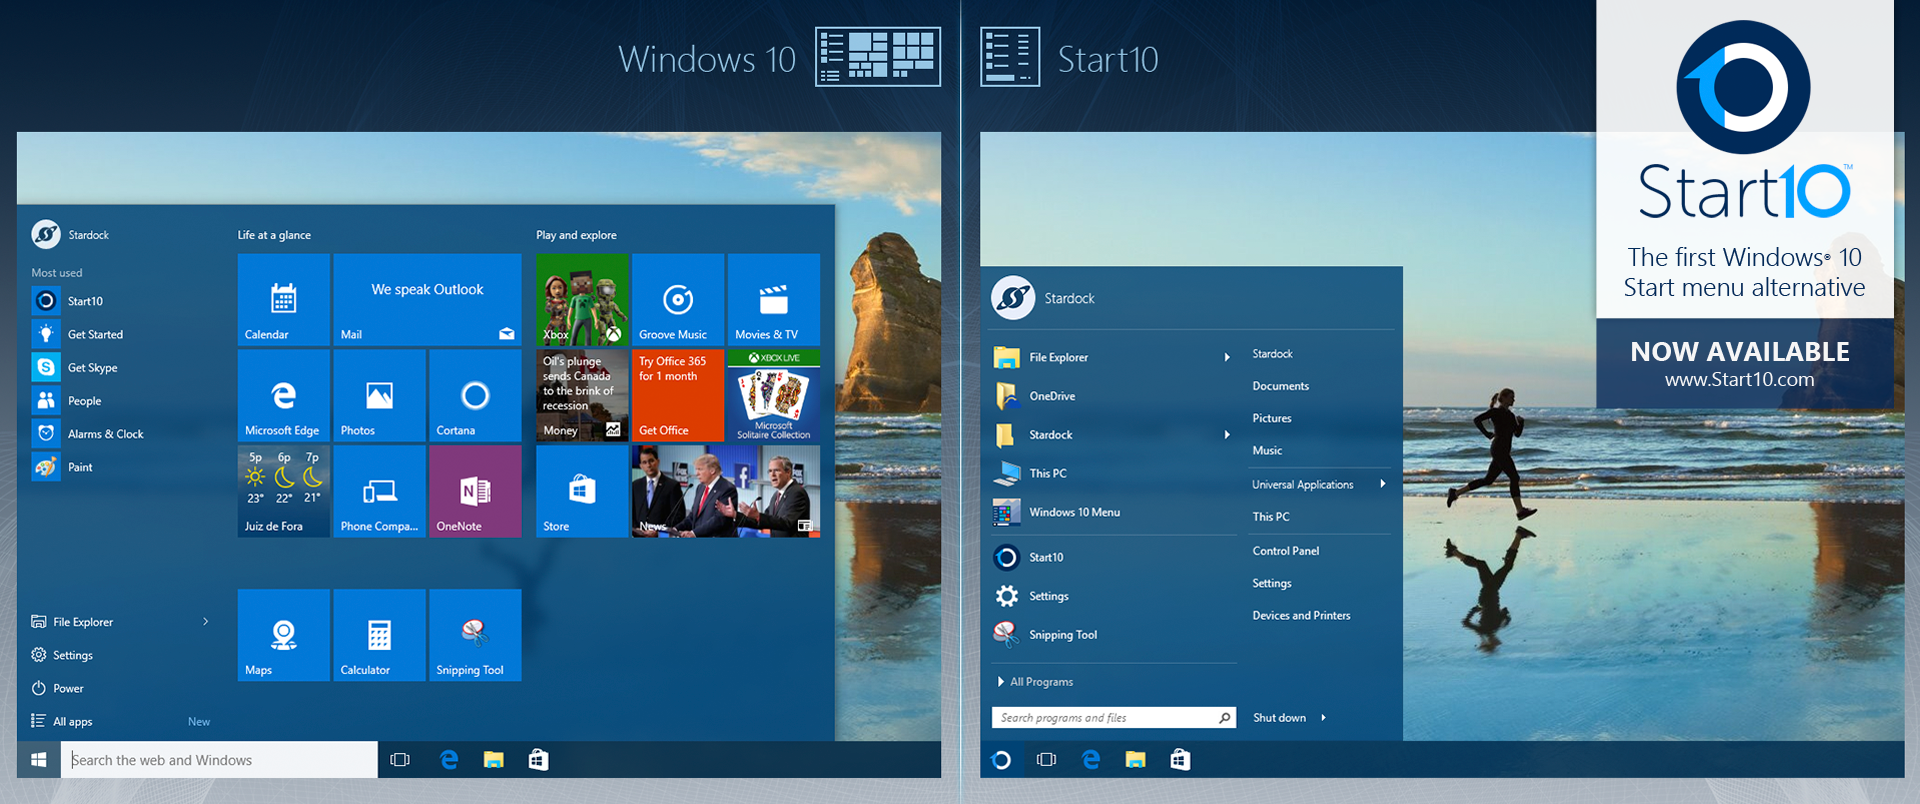 Stardock Brings the start menu back to Windows 10 with ...